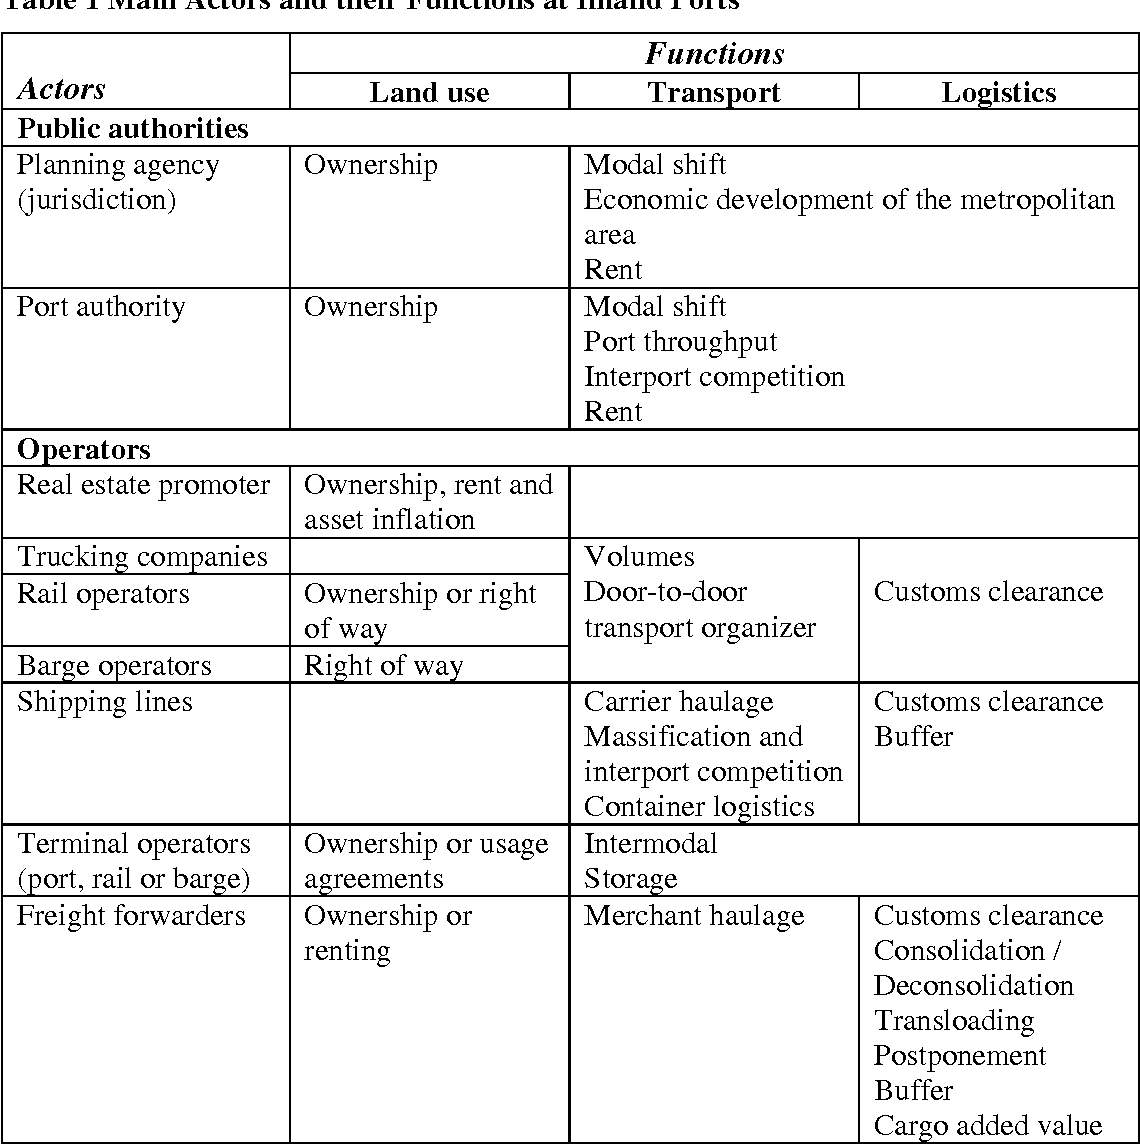 Functions and actors of inland ports: European and North